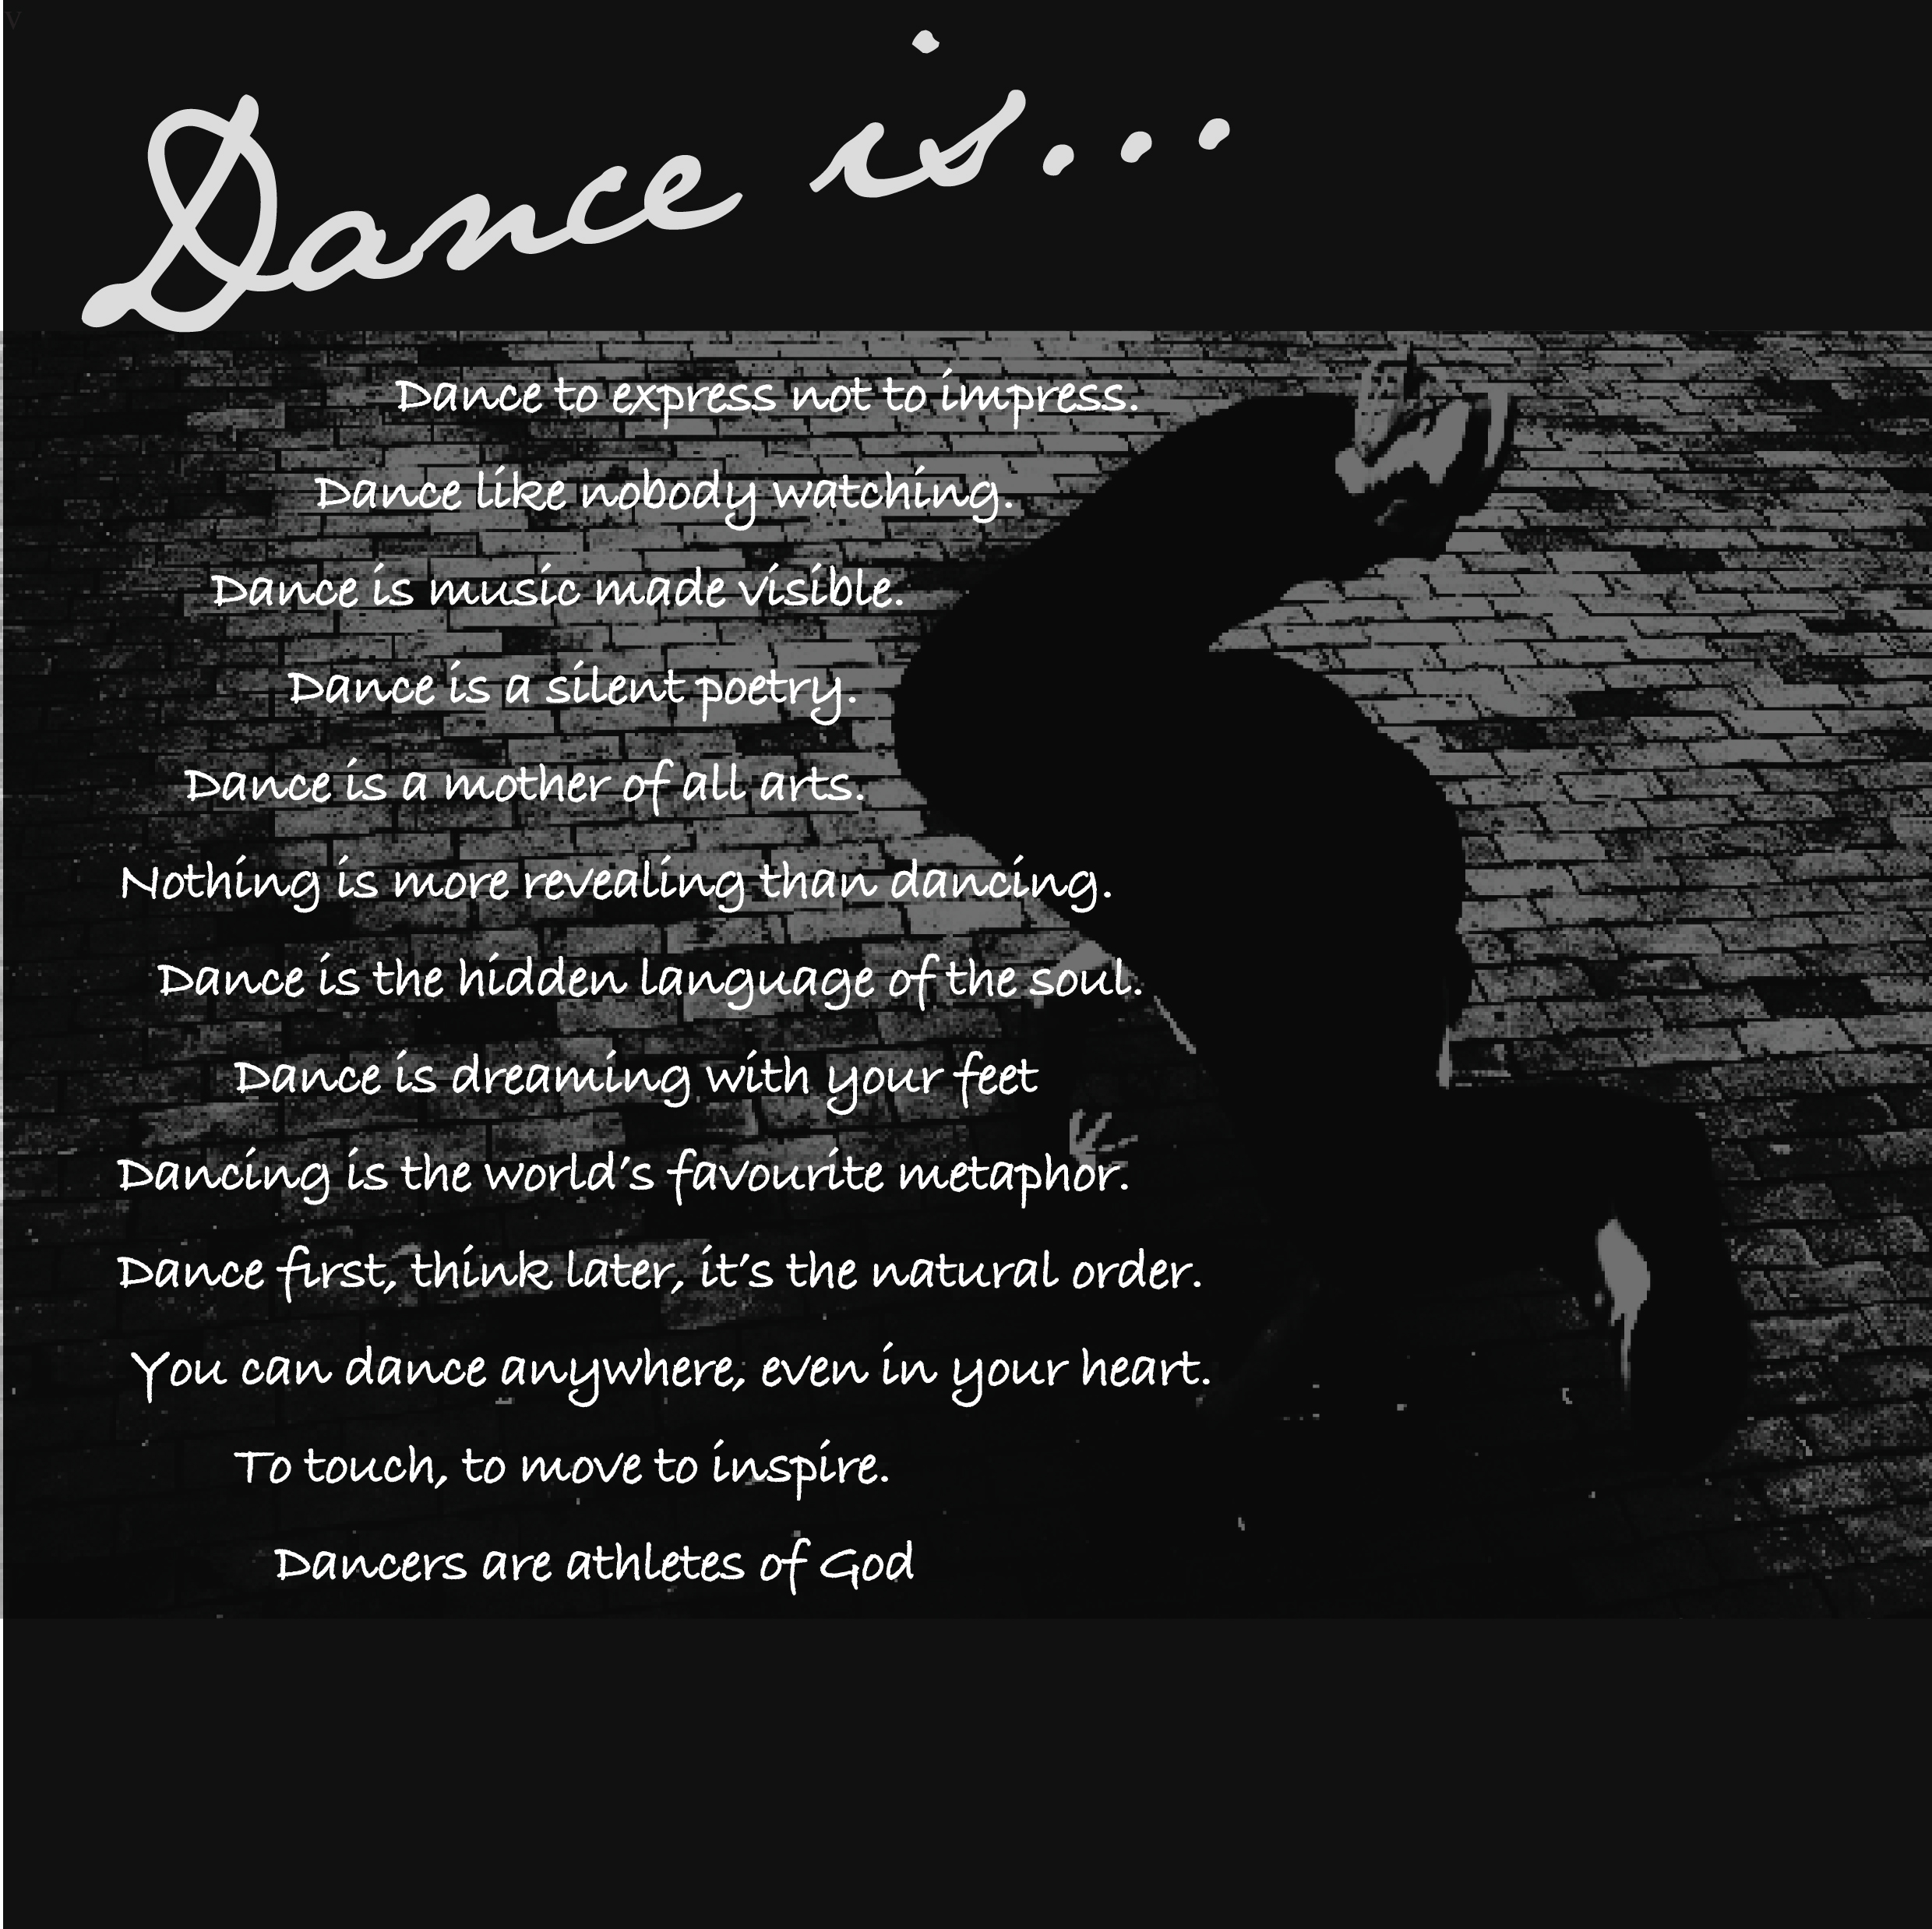 Dancers quote #3